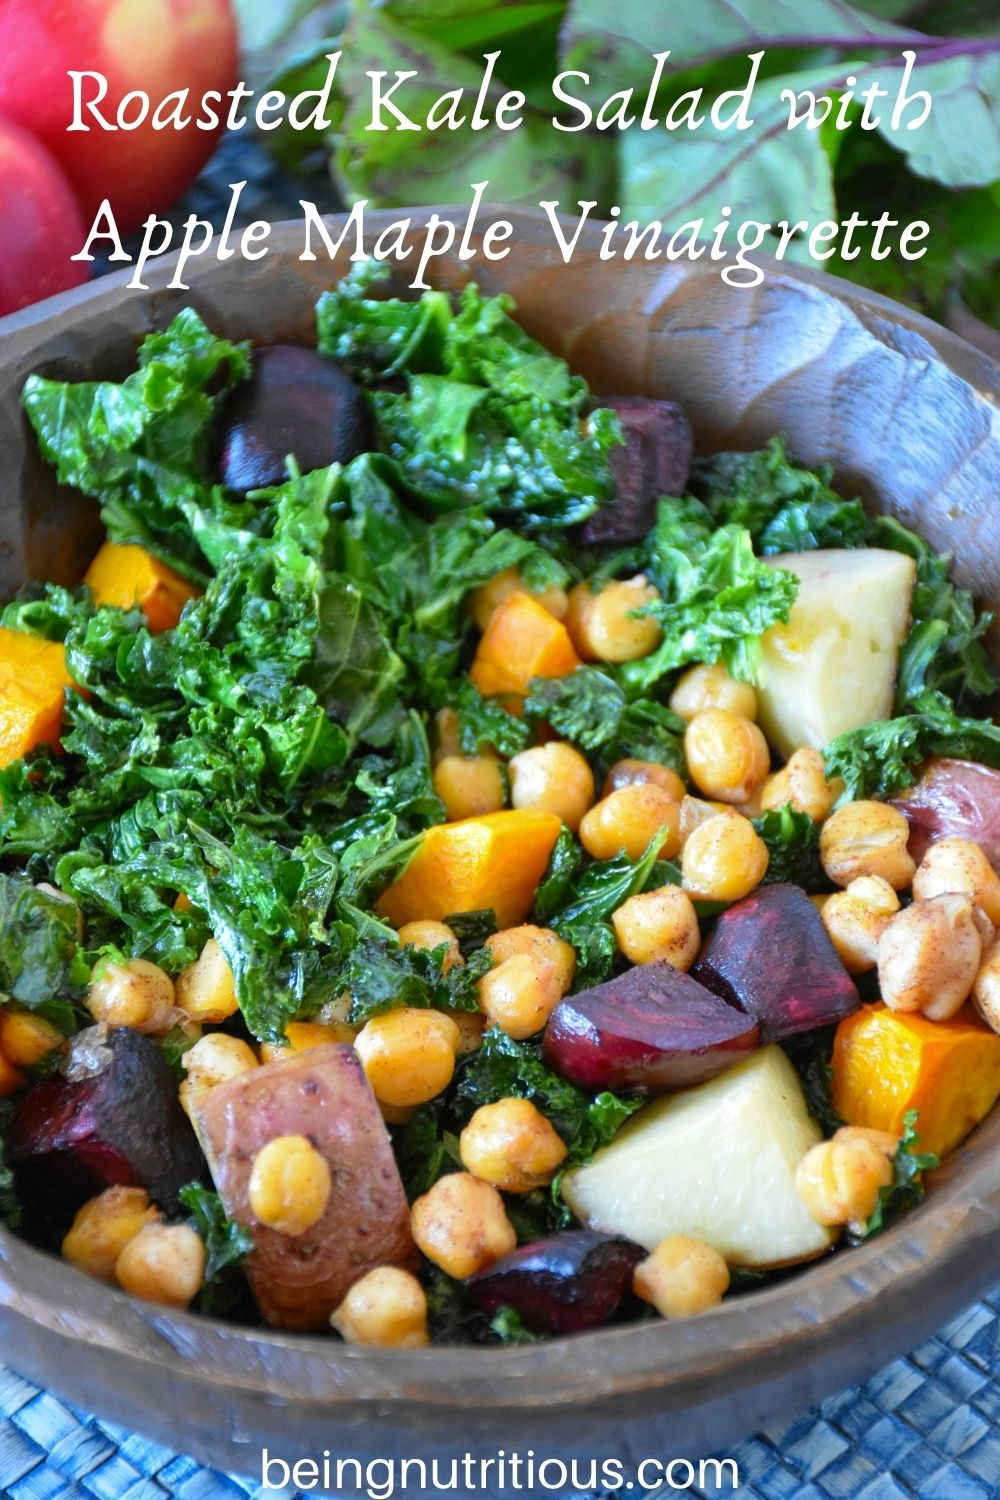 Kale salad in a wooden bowl. Text overlay: Roasted Kale Salad with Apple Maple Vinaigrette.